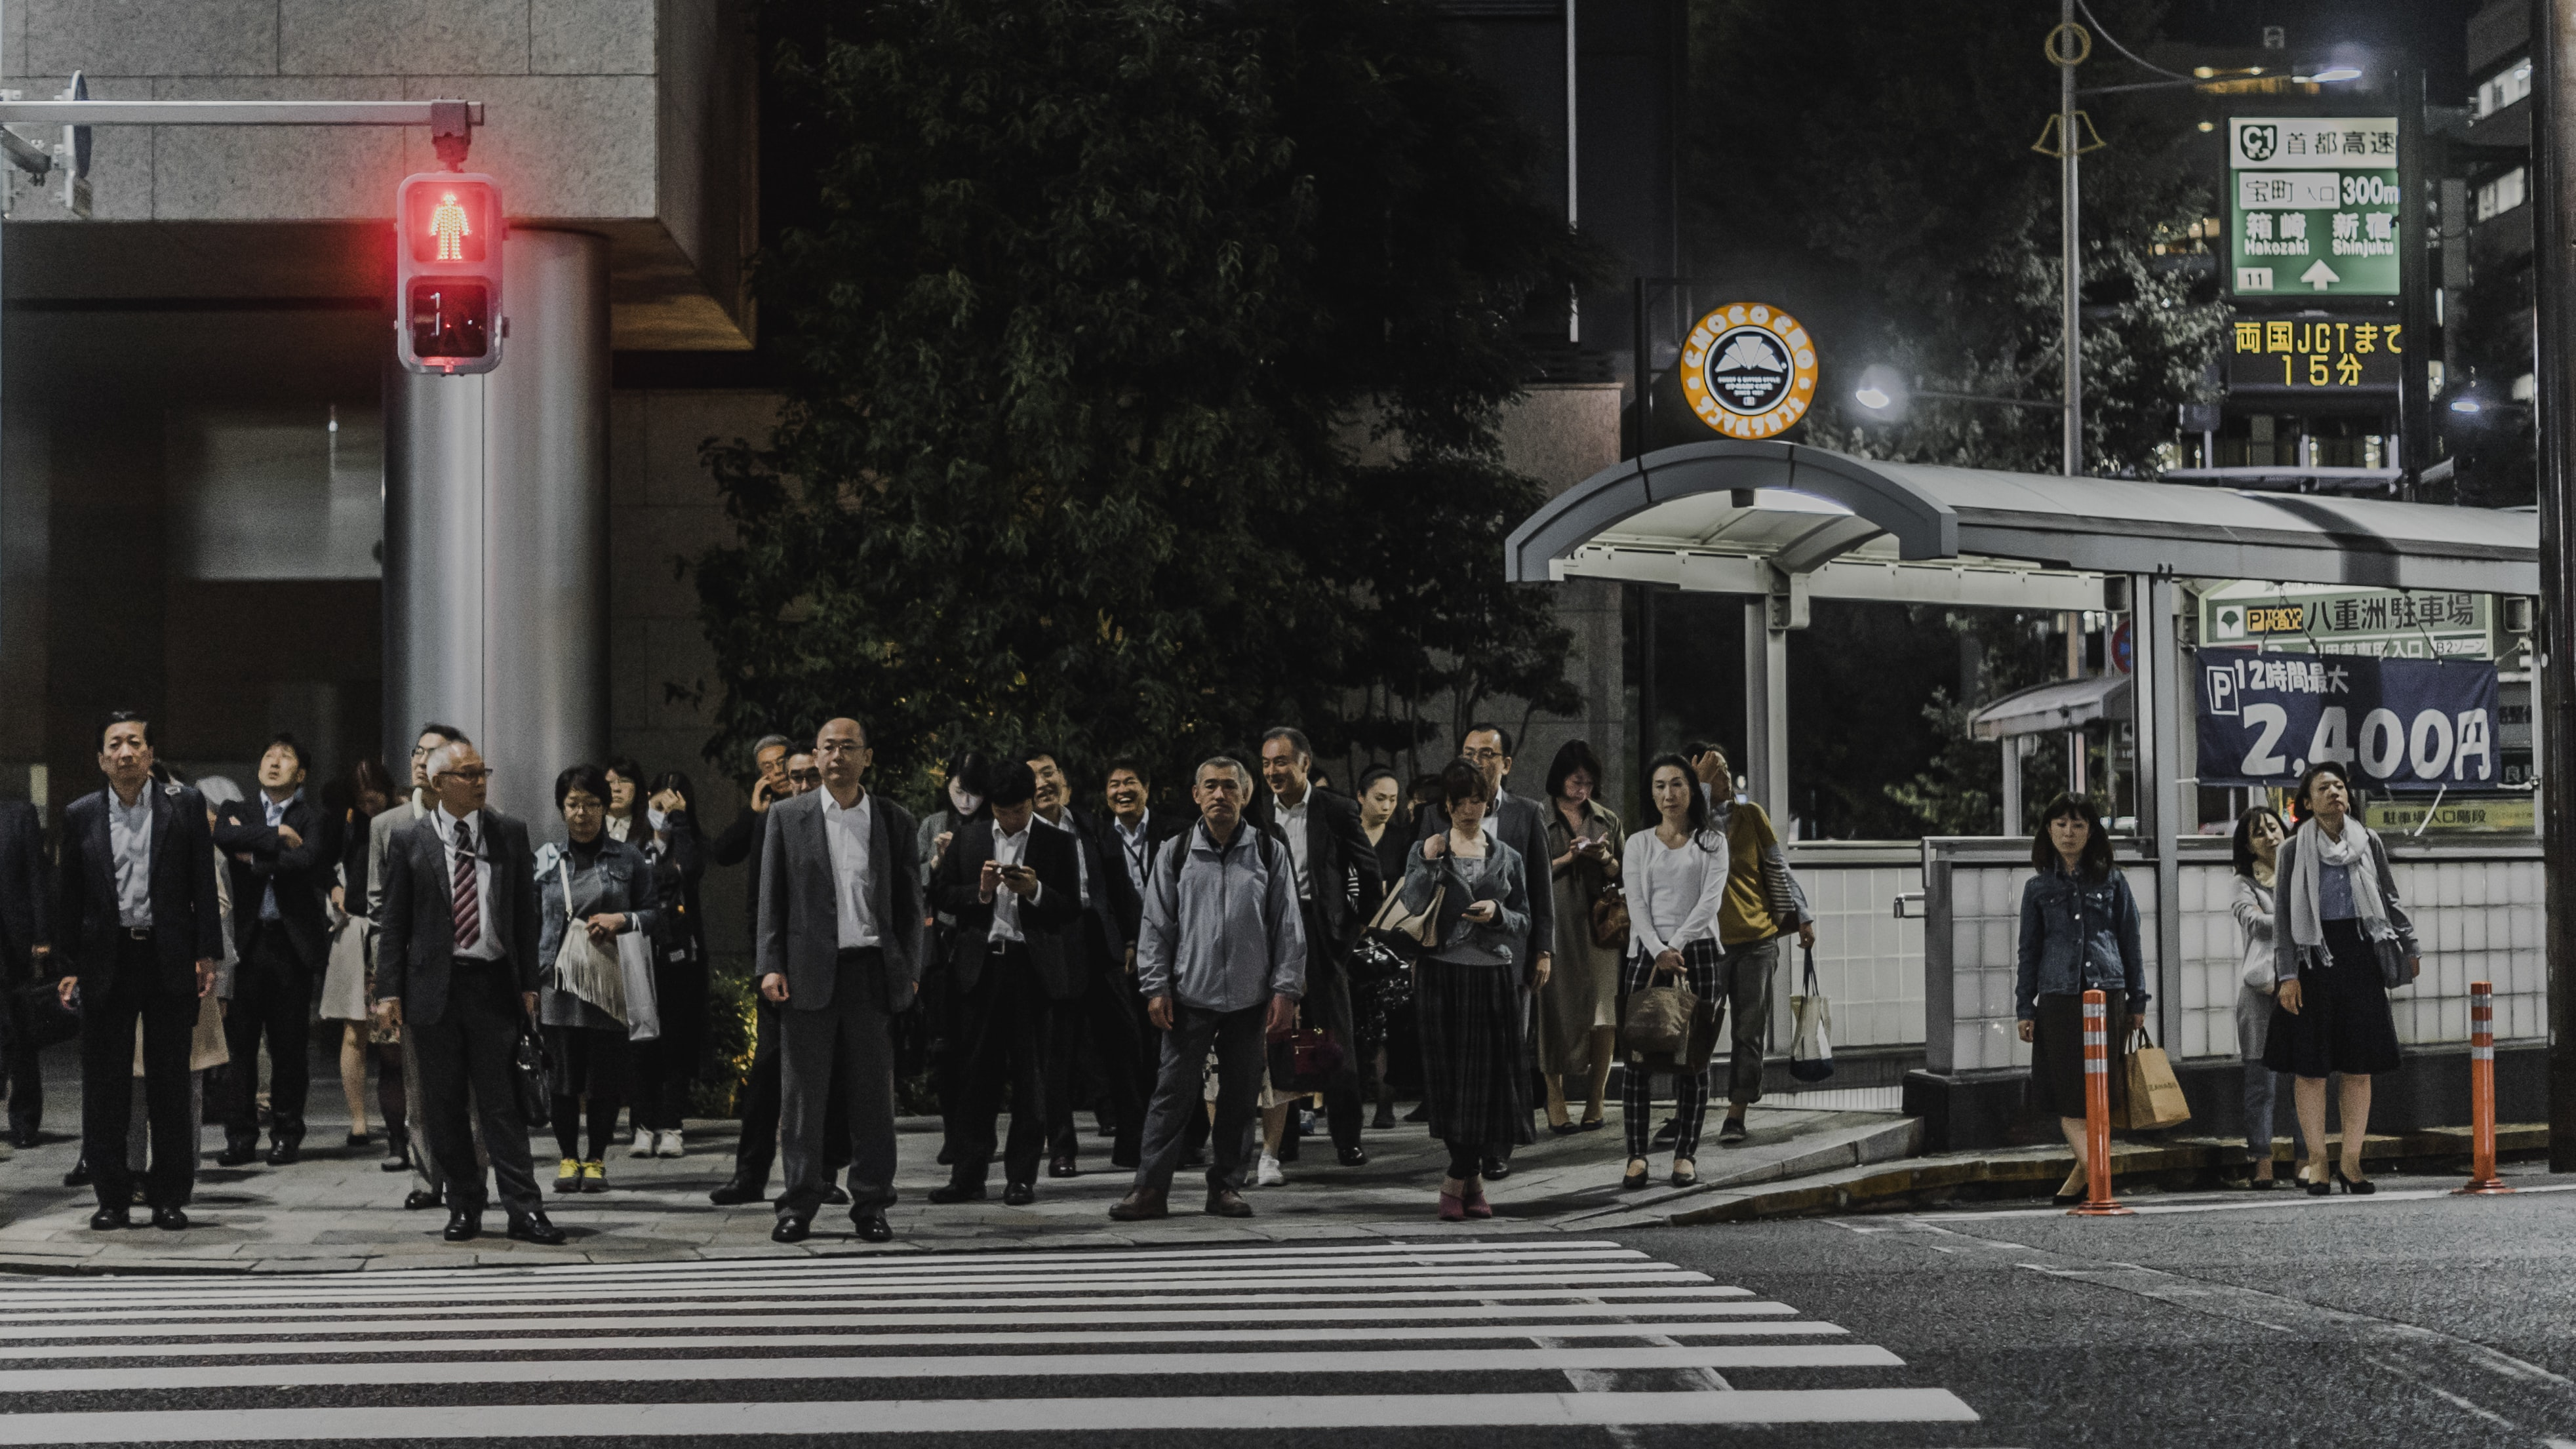 Pedestrians are waiting for the lights to turn green at the crosswalk in Tokyo.